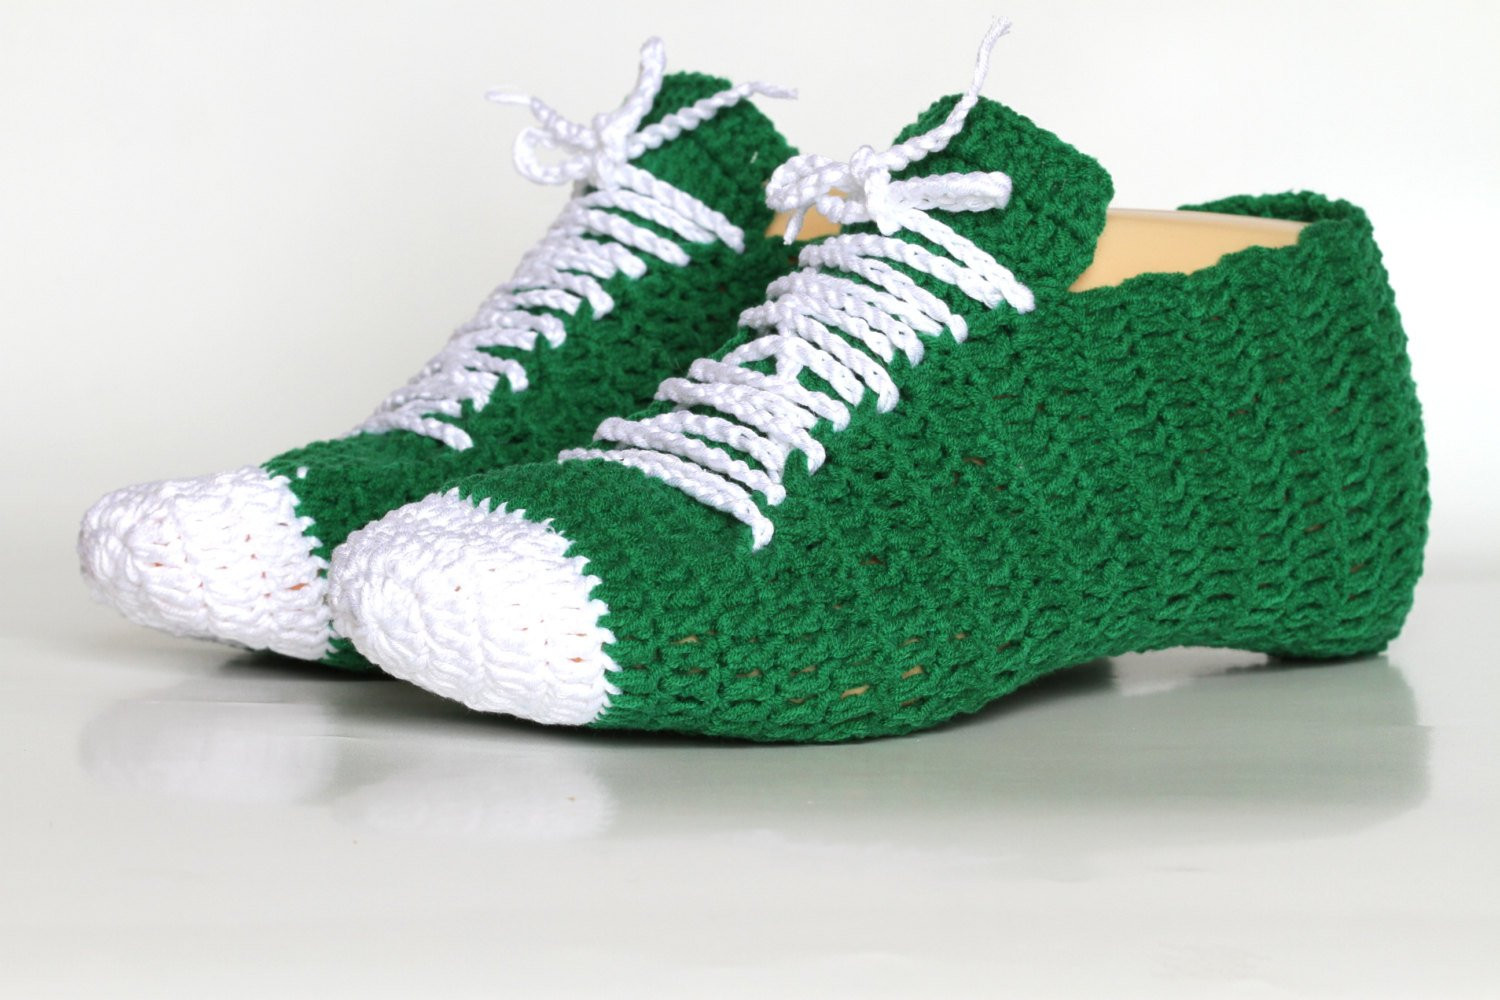 Crochet Sneakers New Crocheted Sneaker Slippers Pattern Uni Slippers Pdf Of Gorgeous 50 Pics Crochet Sneakers